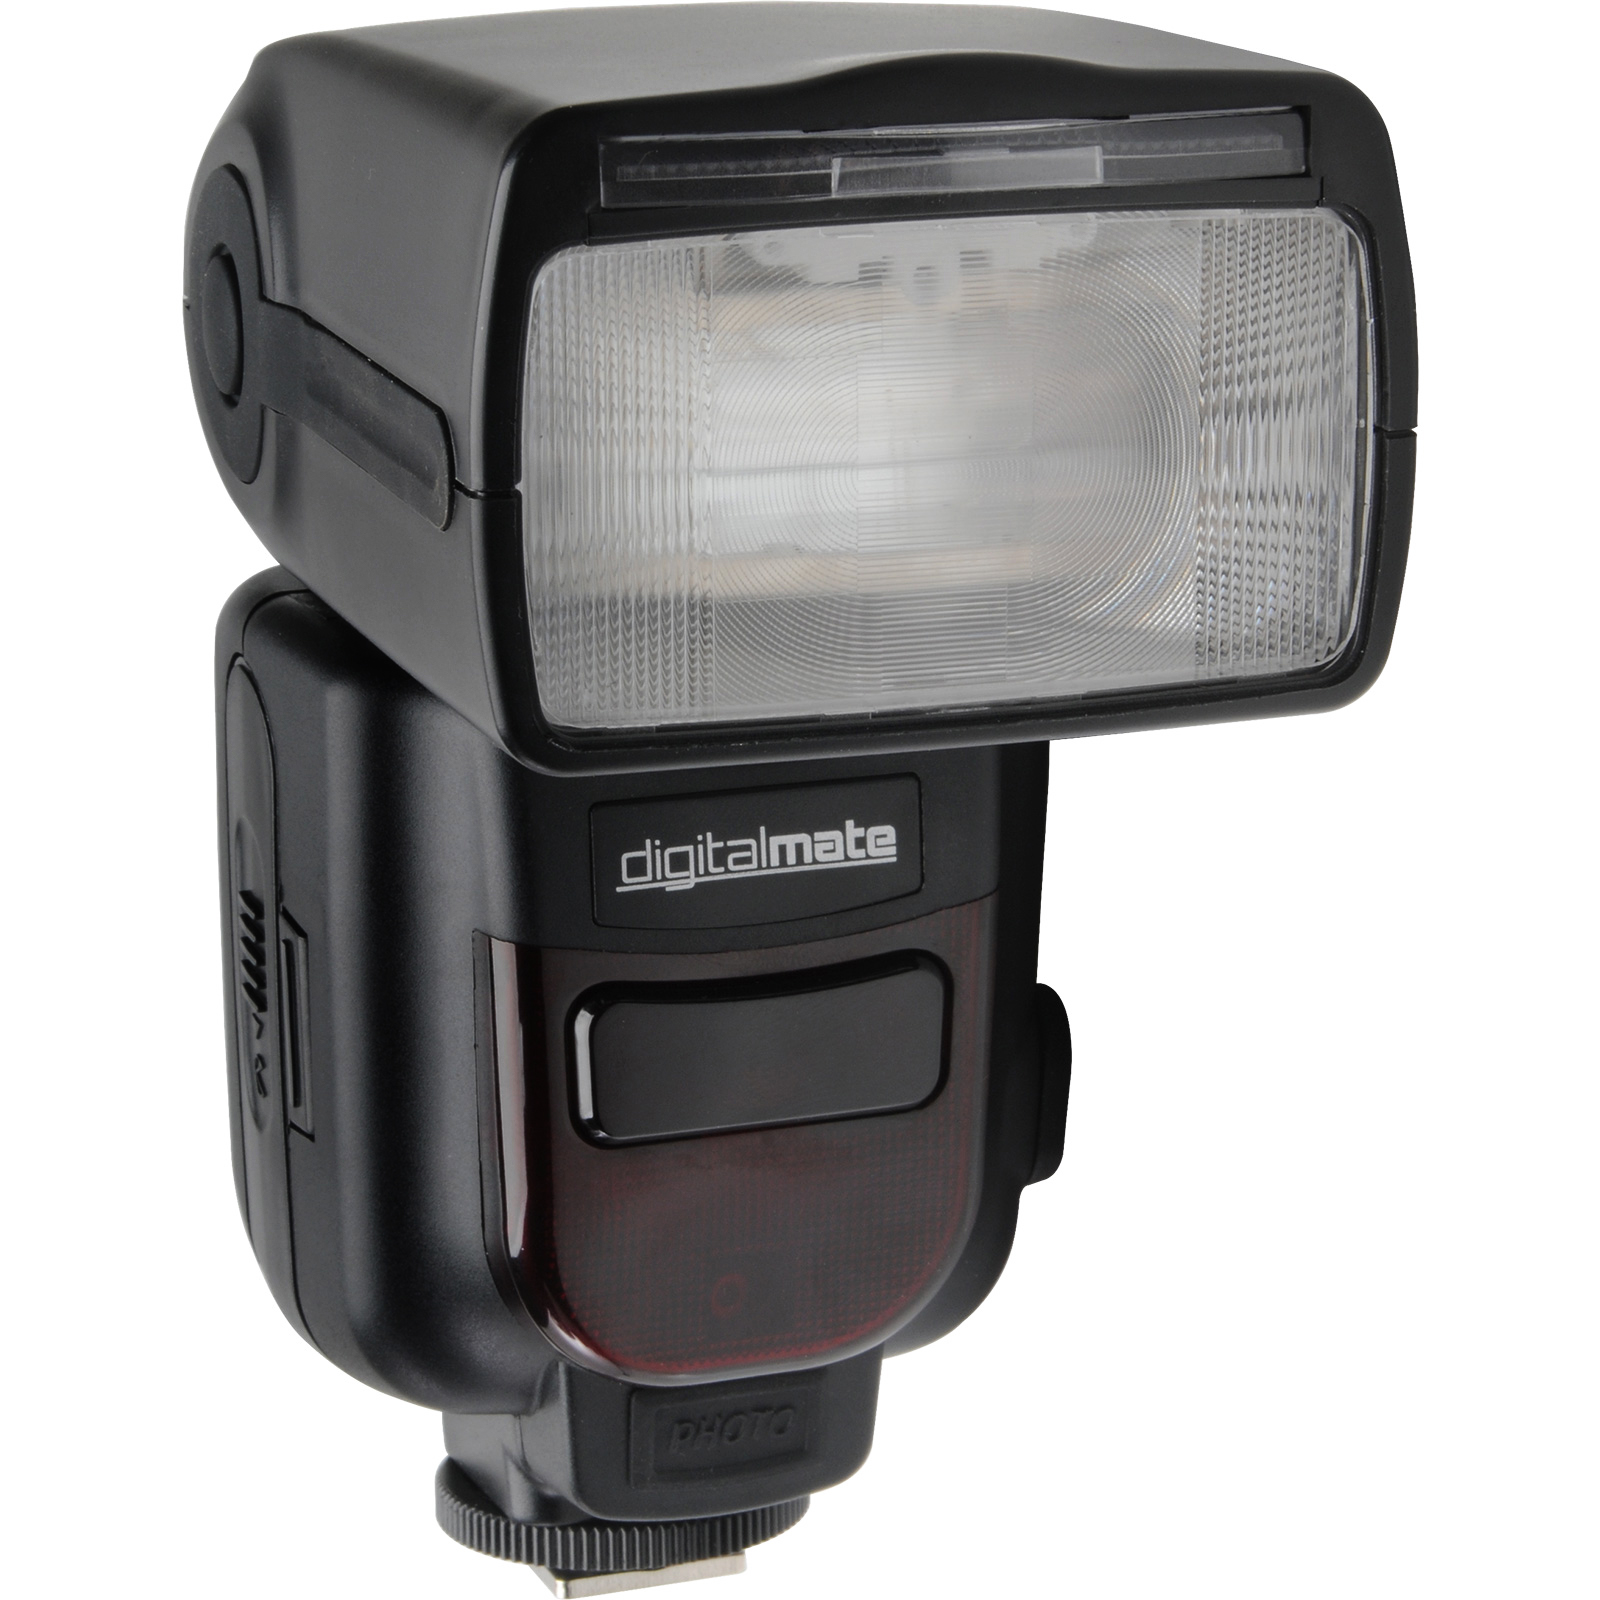 Digitalmate 780 Power Zoom AF Flash with LCD Display (for Canon EOS E-TTL)